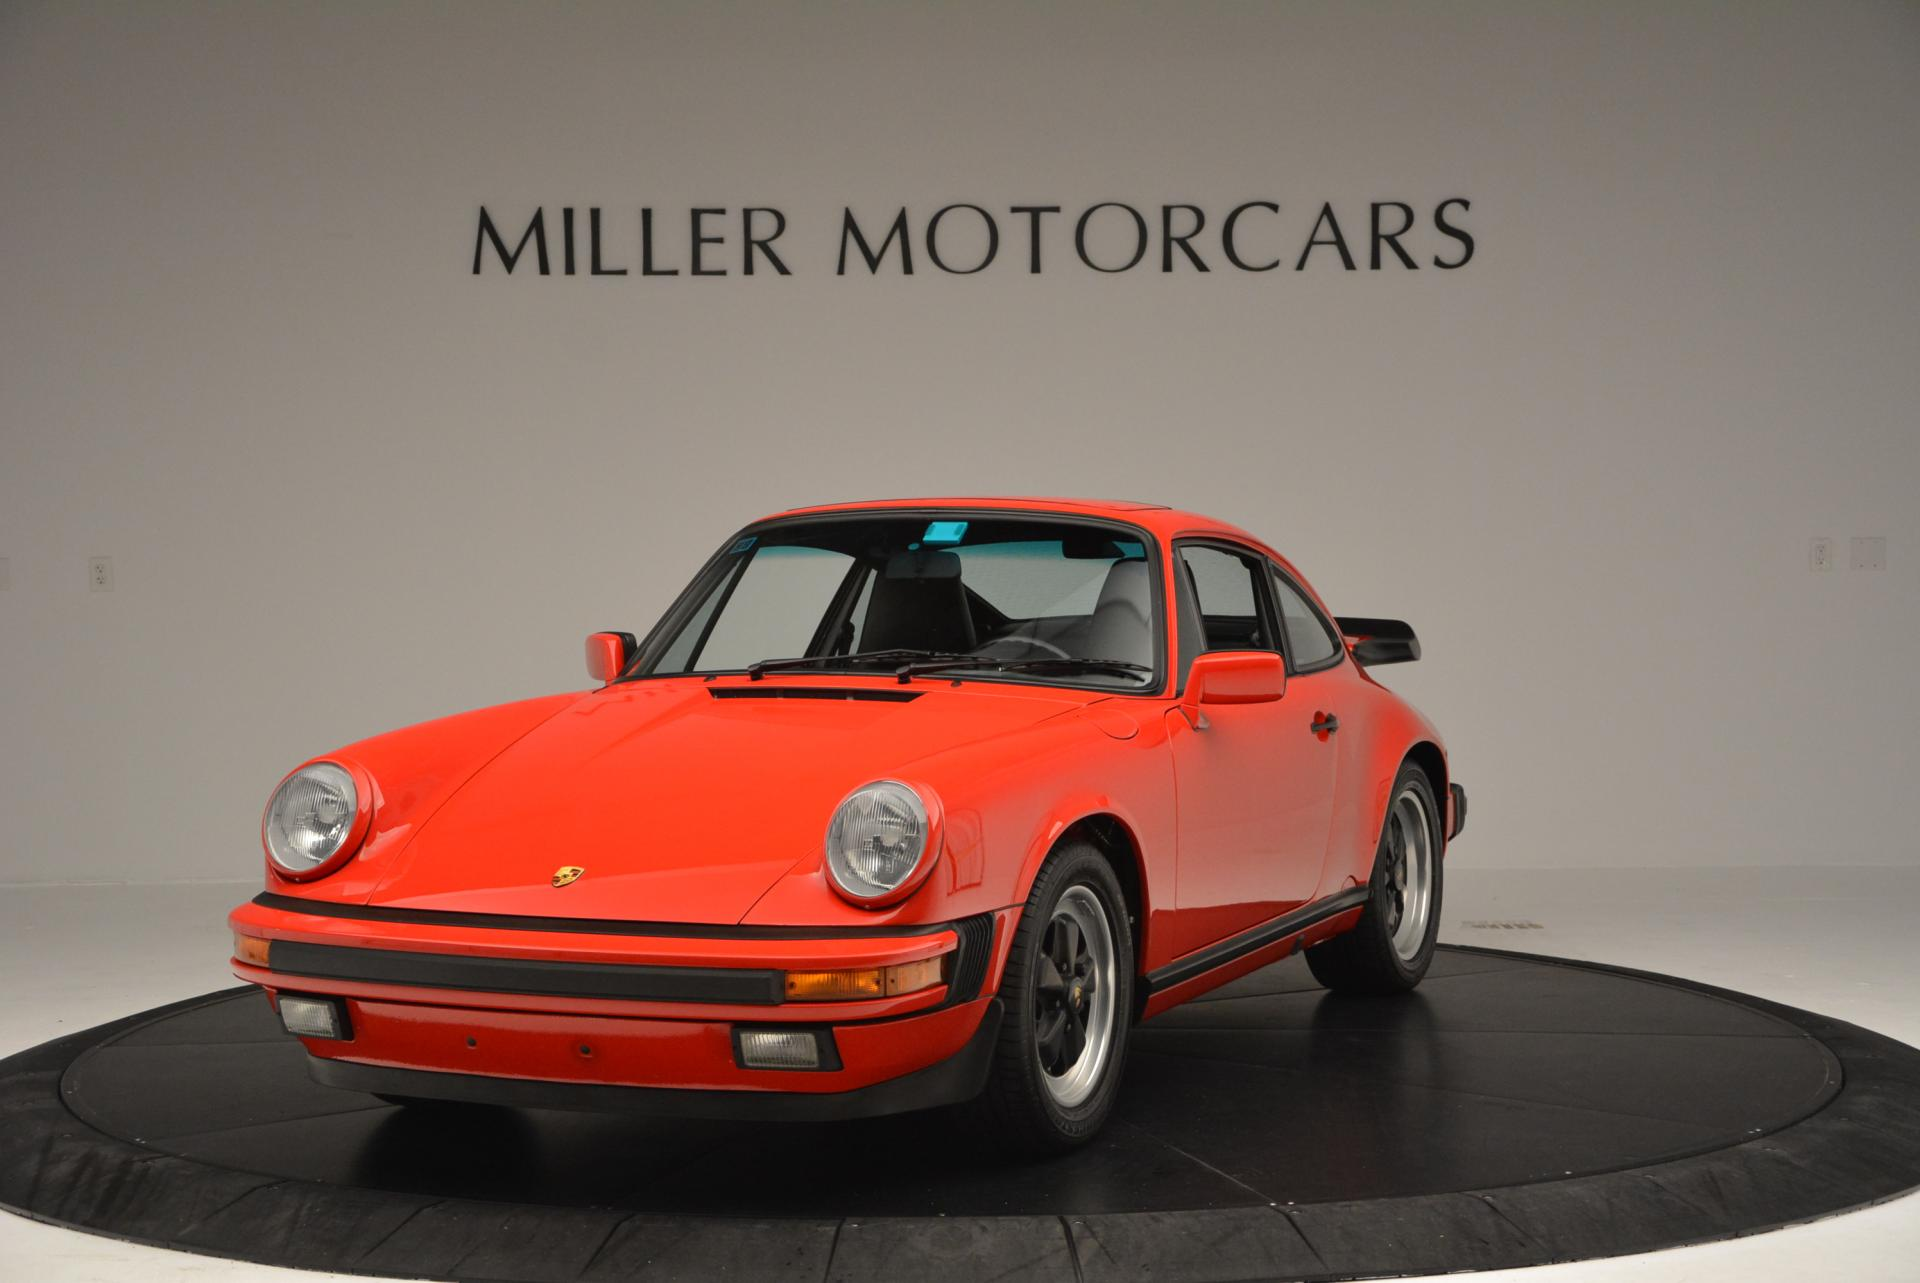 Used 1988 Porsche 911 Carrera for sale Sold at Bentley Greenwich in Greenwich CT 06830 1